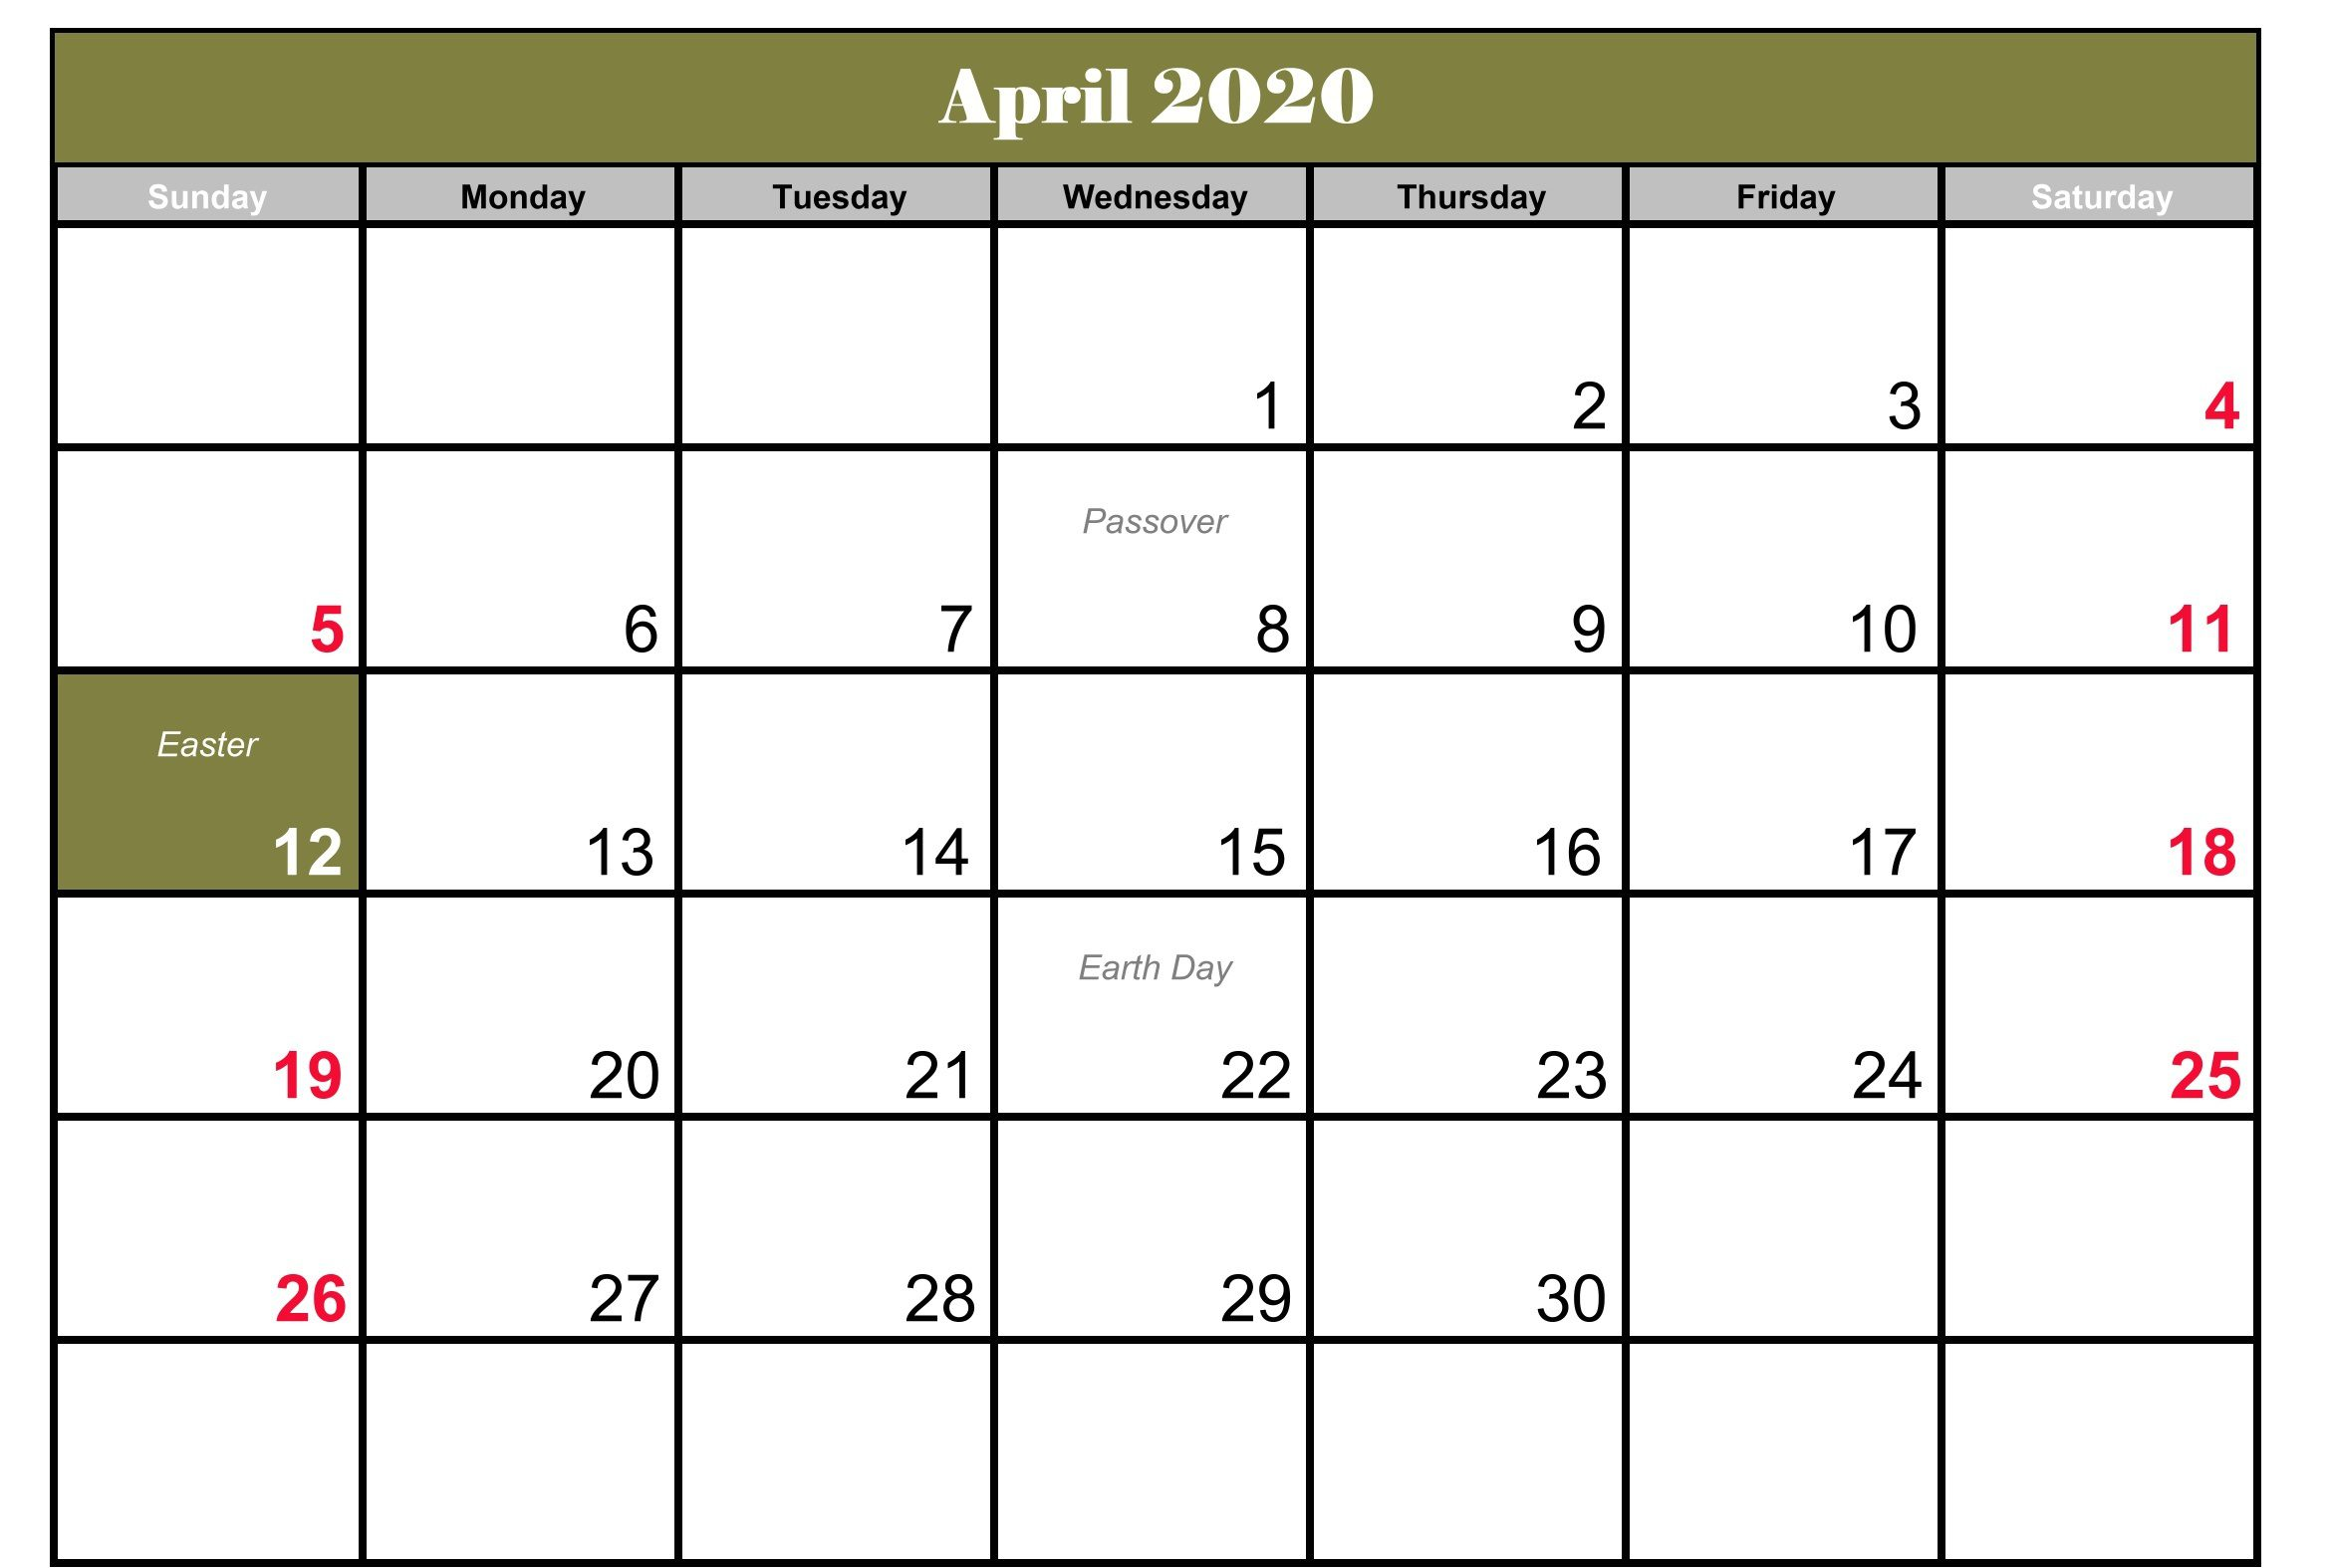 April 2020 Holidays Calendar Printable Template